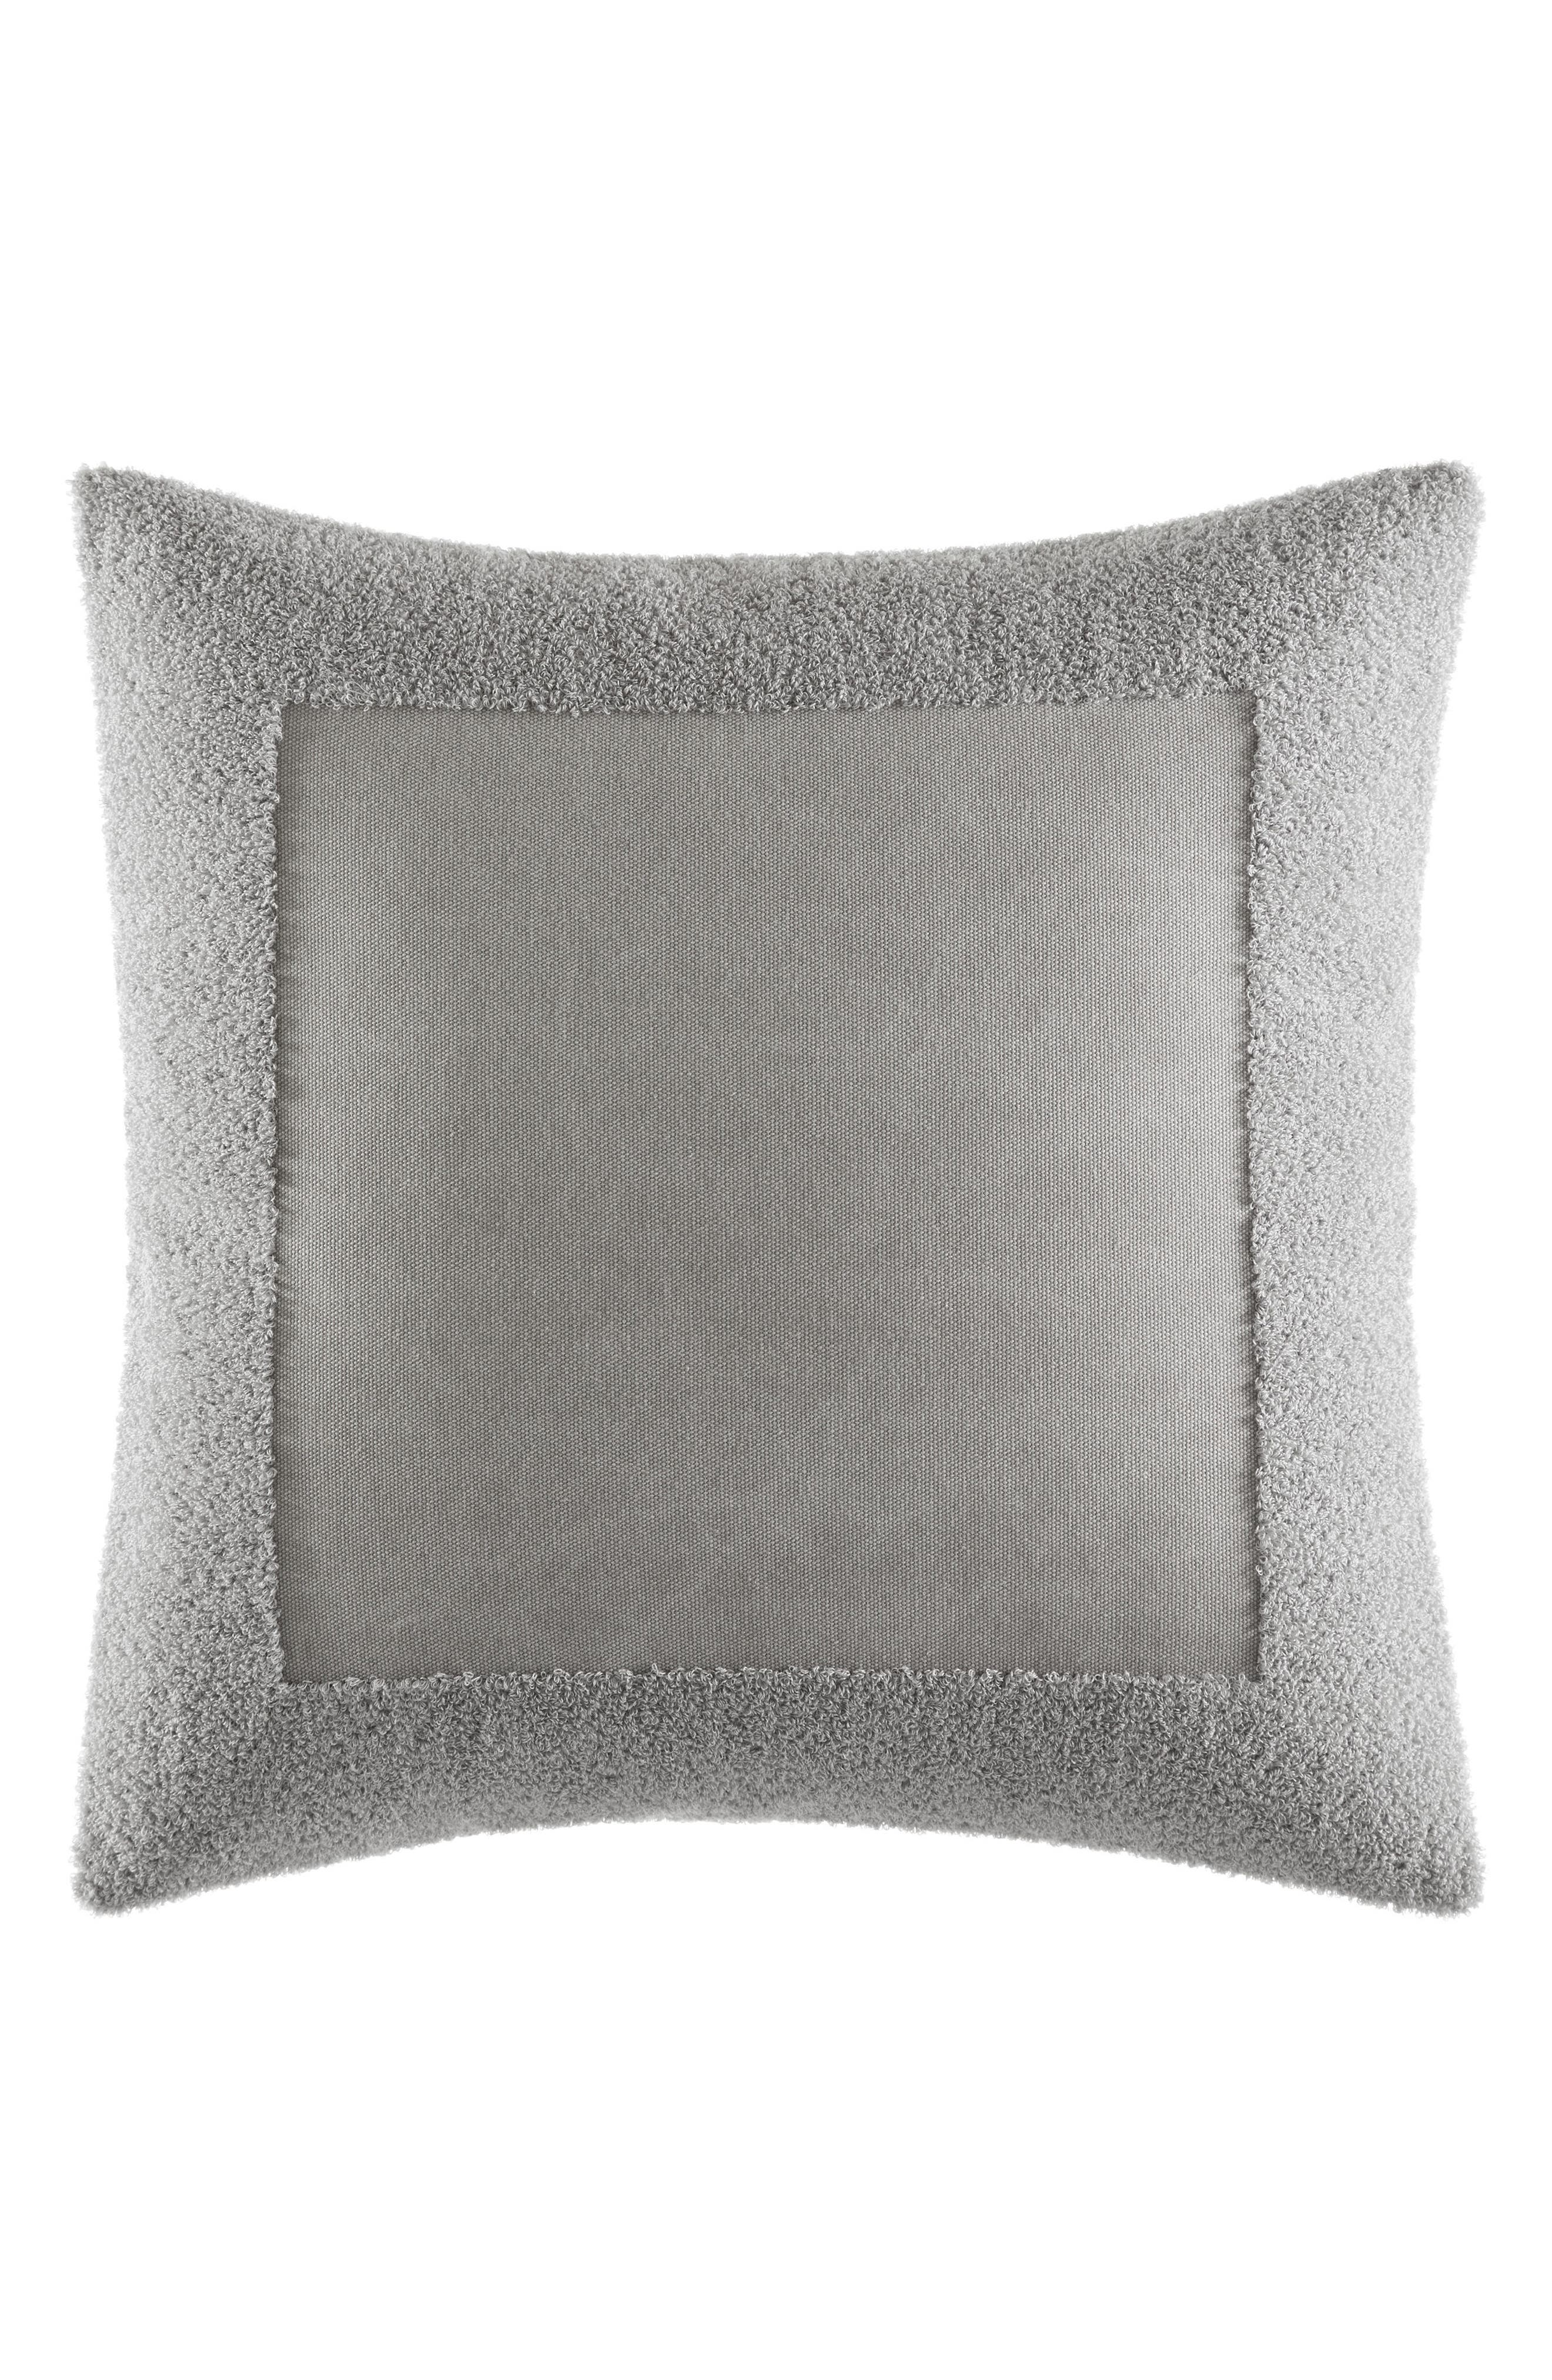 Vera Wang Transparent Leaves Accent Pillow